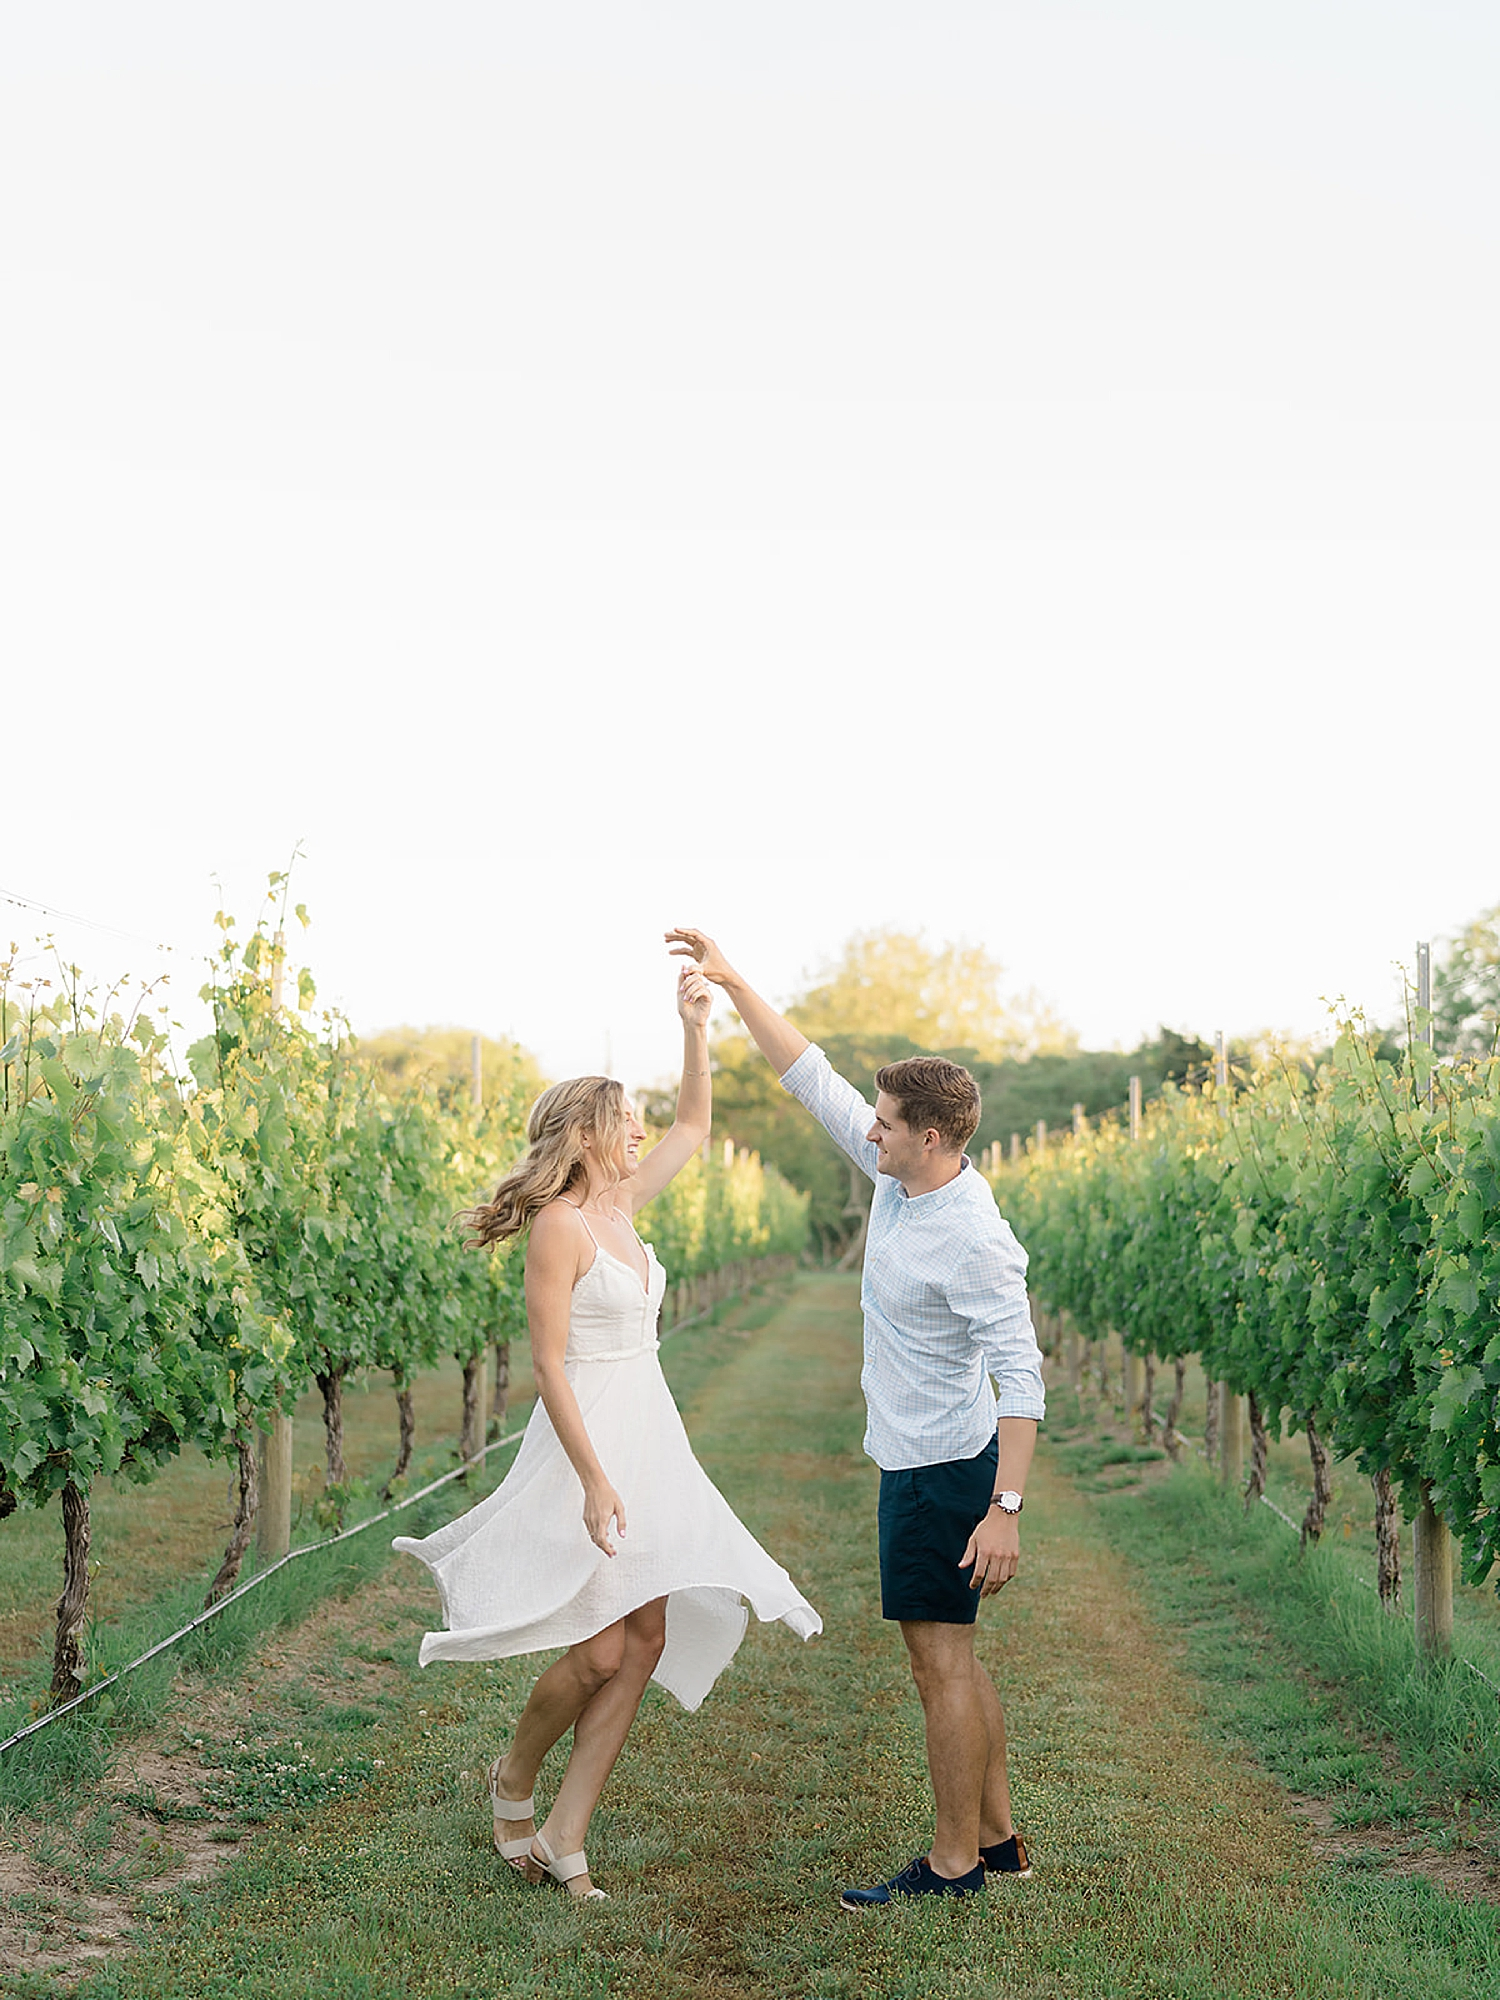 Cape May NJ Engagement Photography by Magdalena Studios 0007